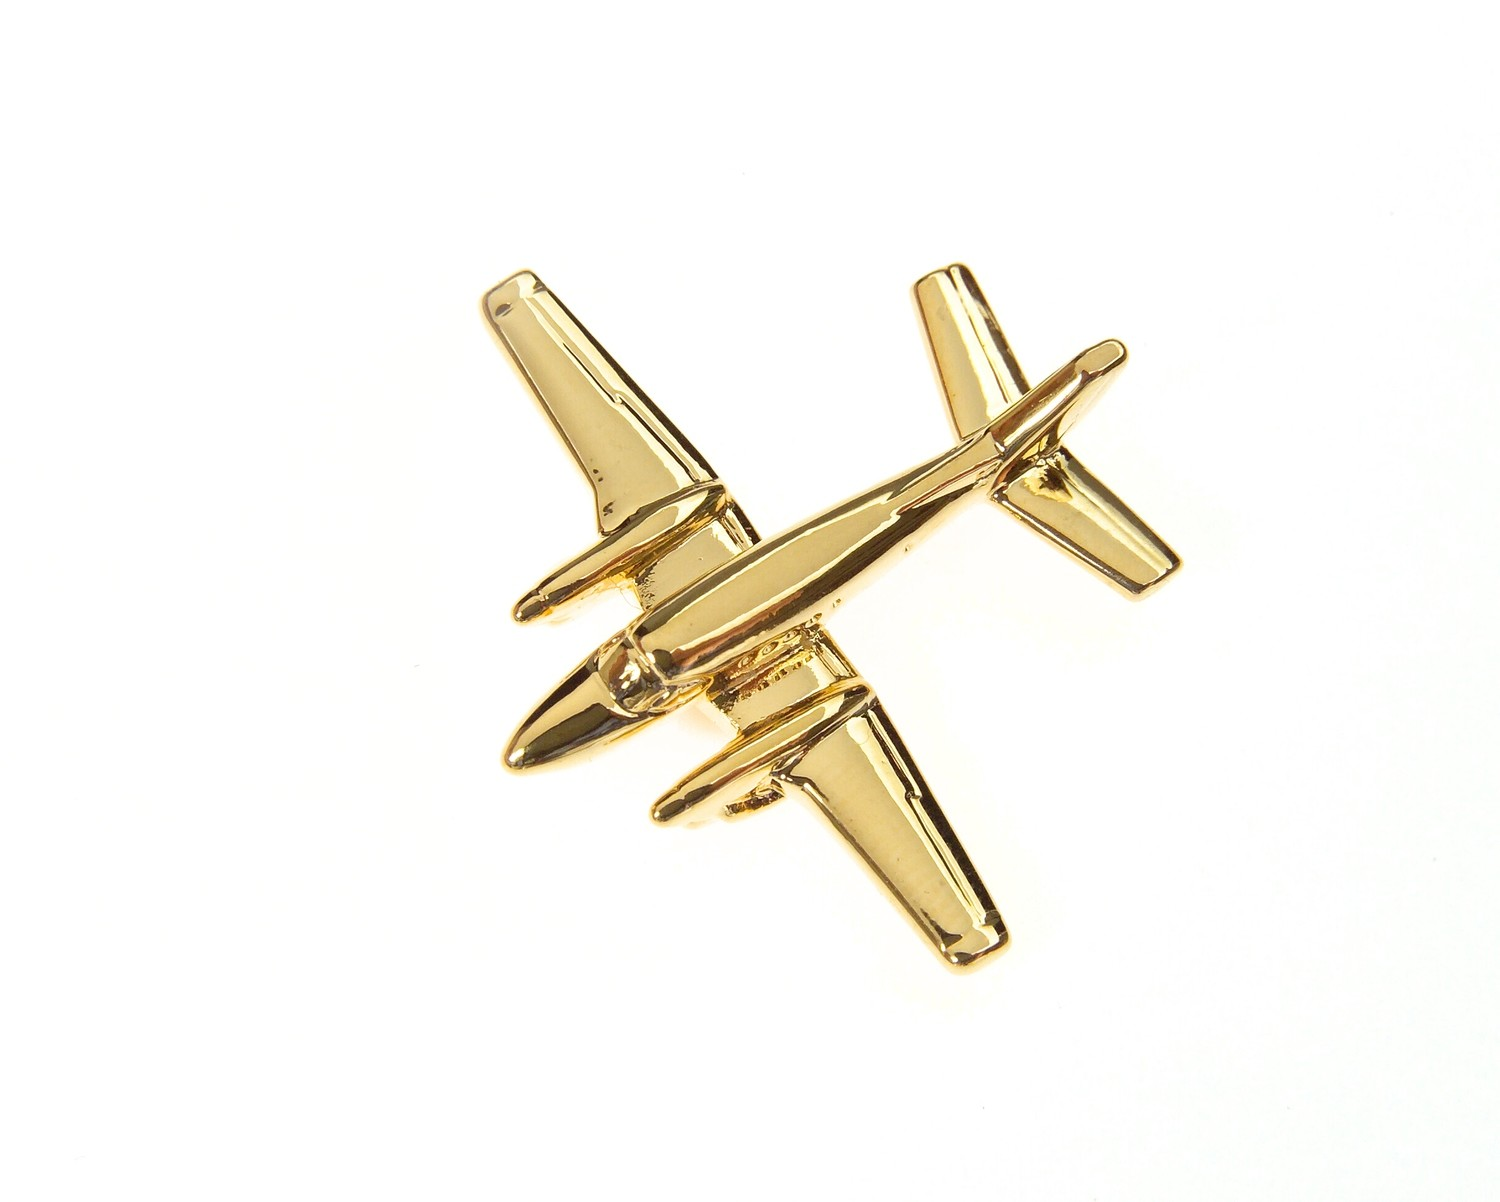 Beech C90 Gold Plated Tie / Lapel Pin